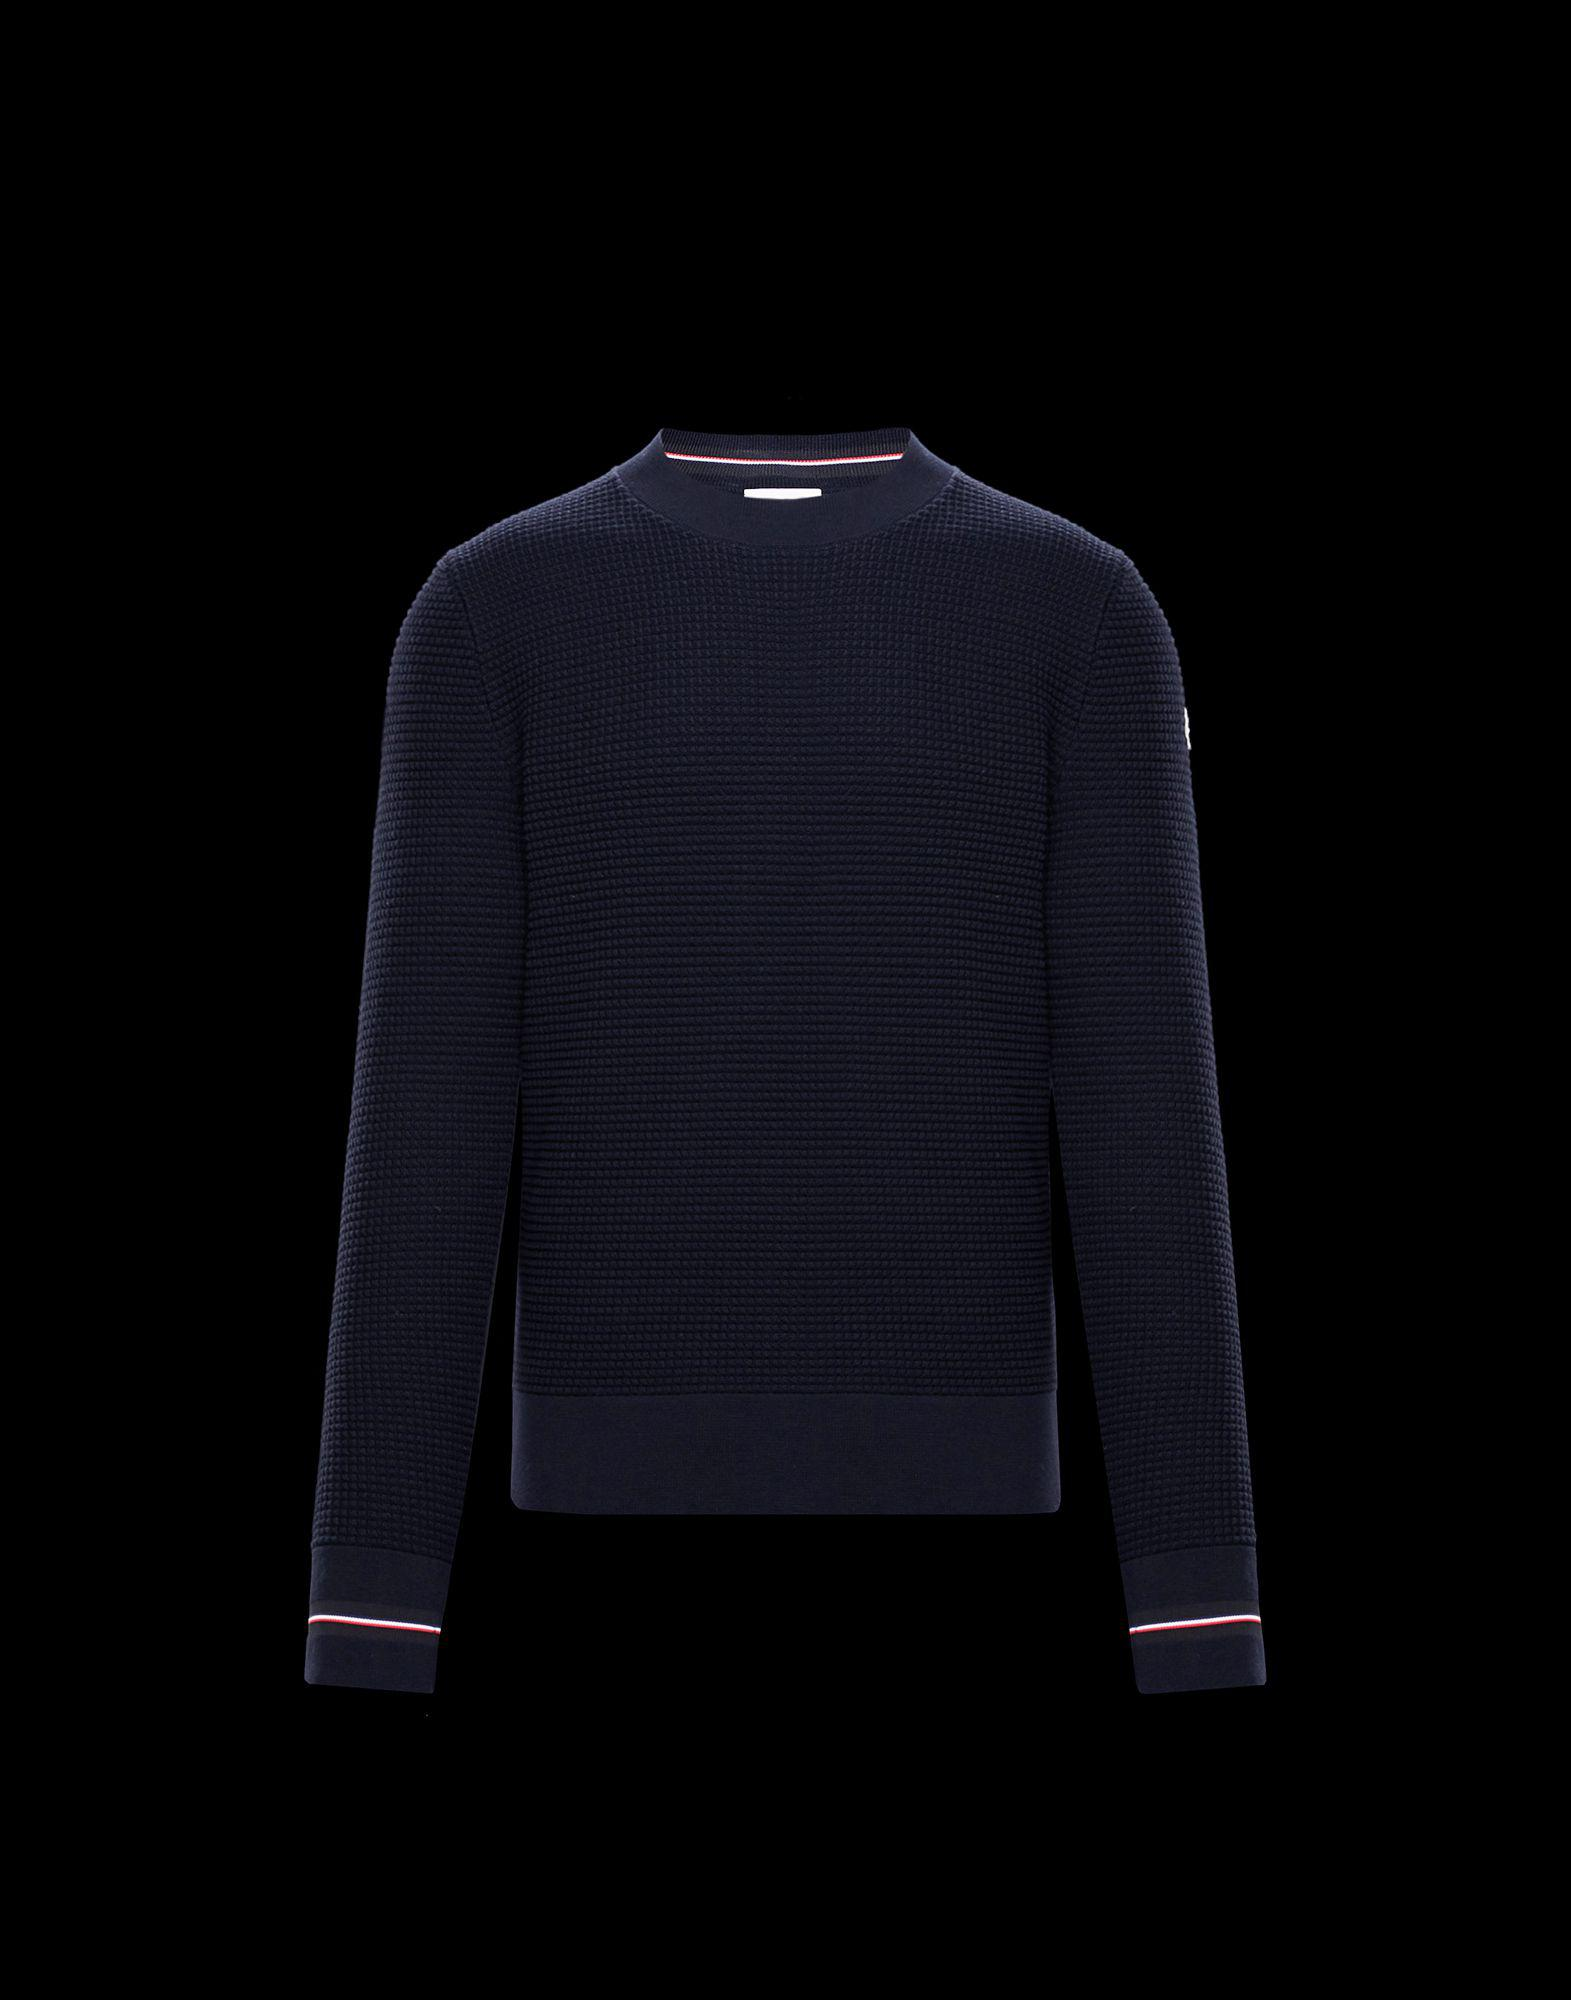 cb01483c1 Lyst - Moncler Crewneck in Blue for Men